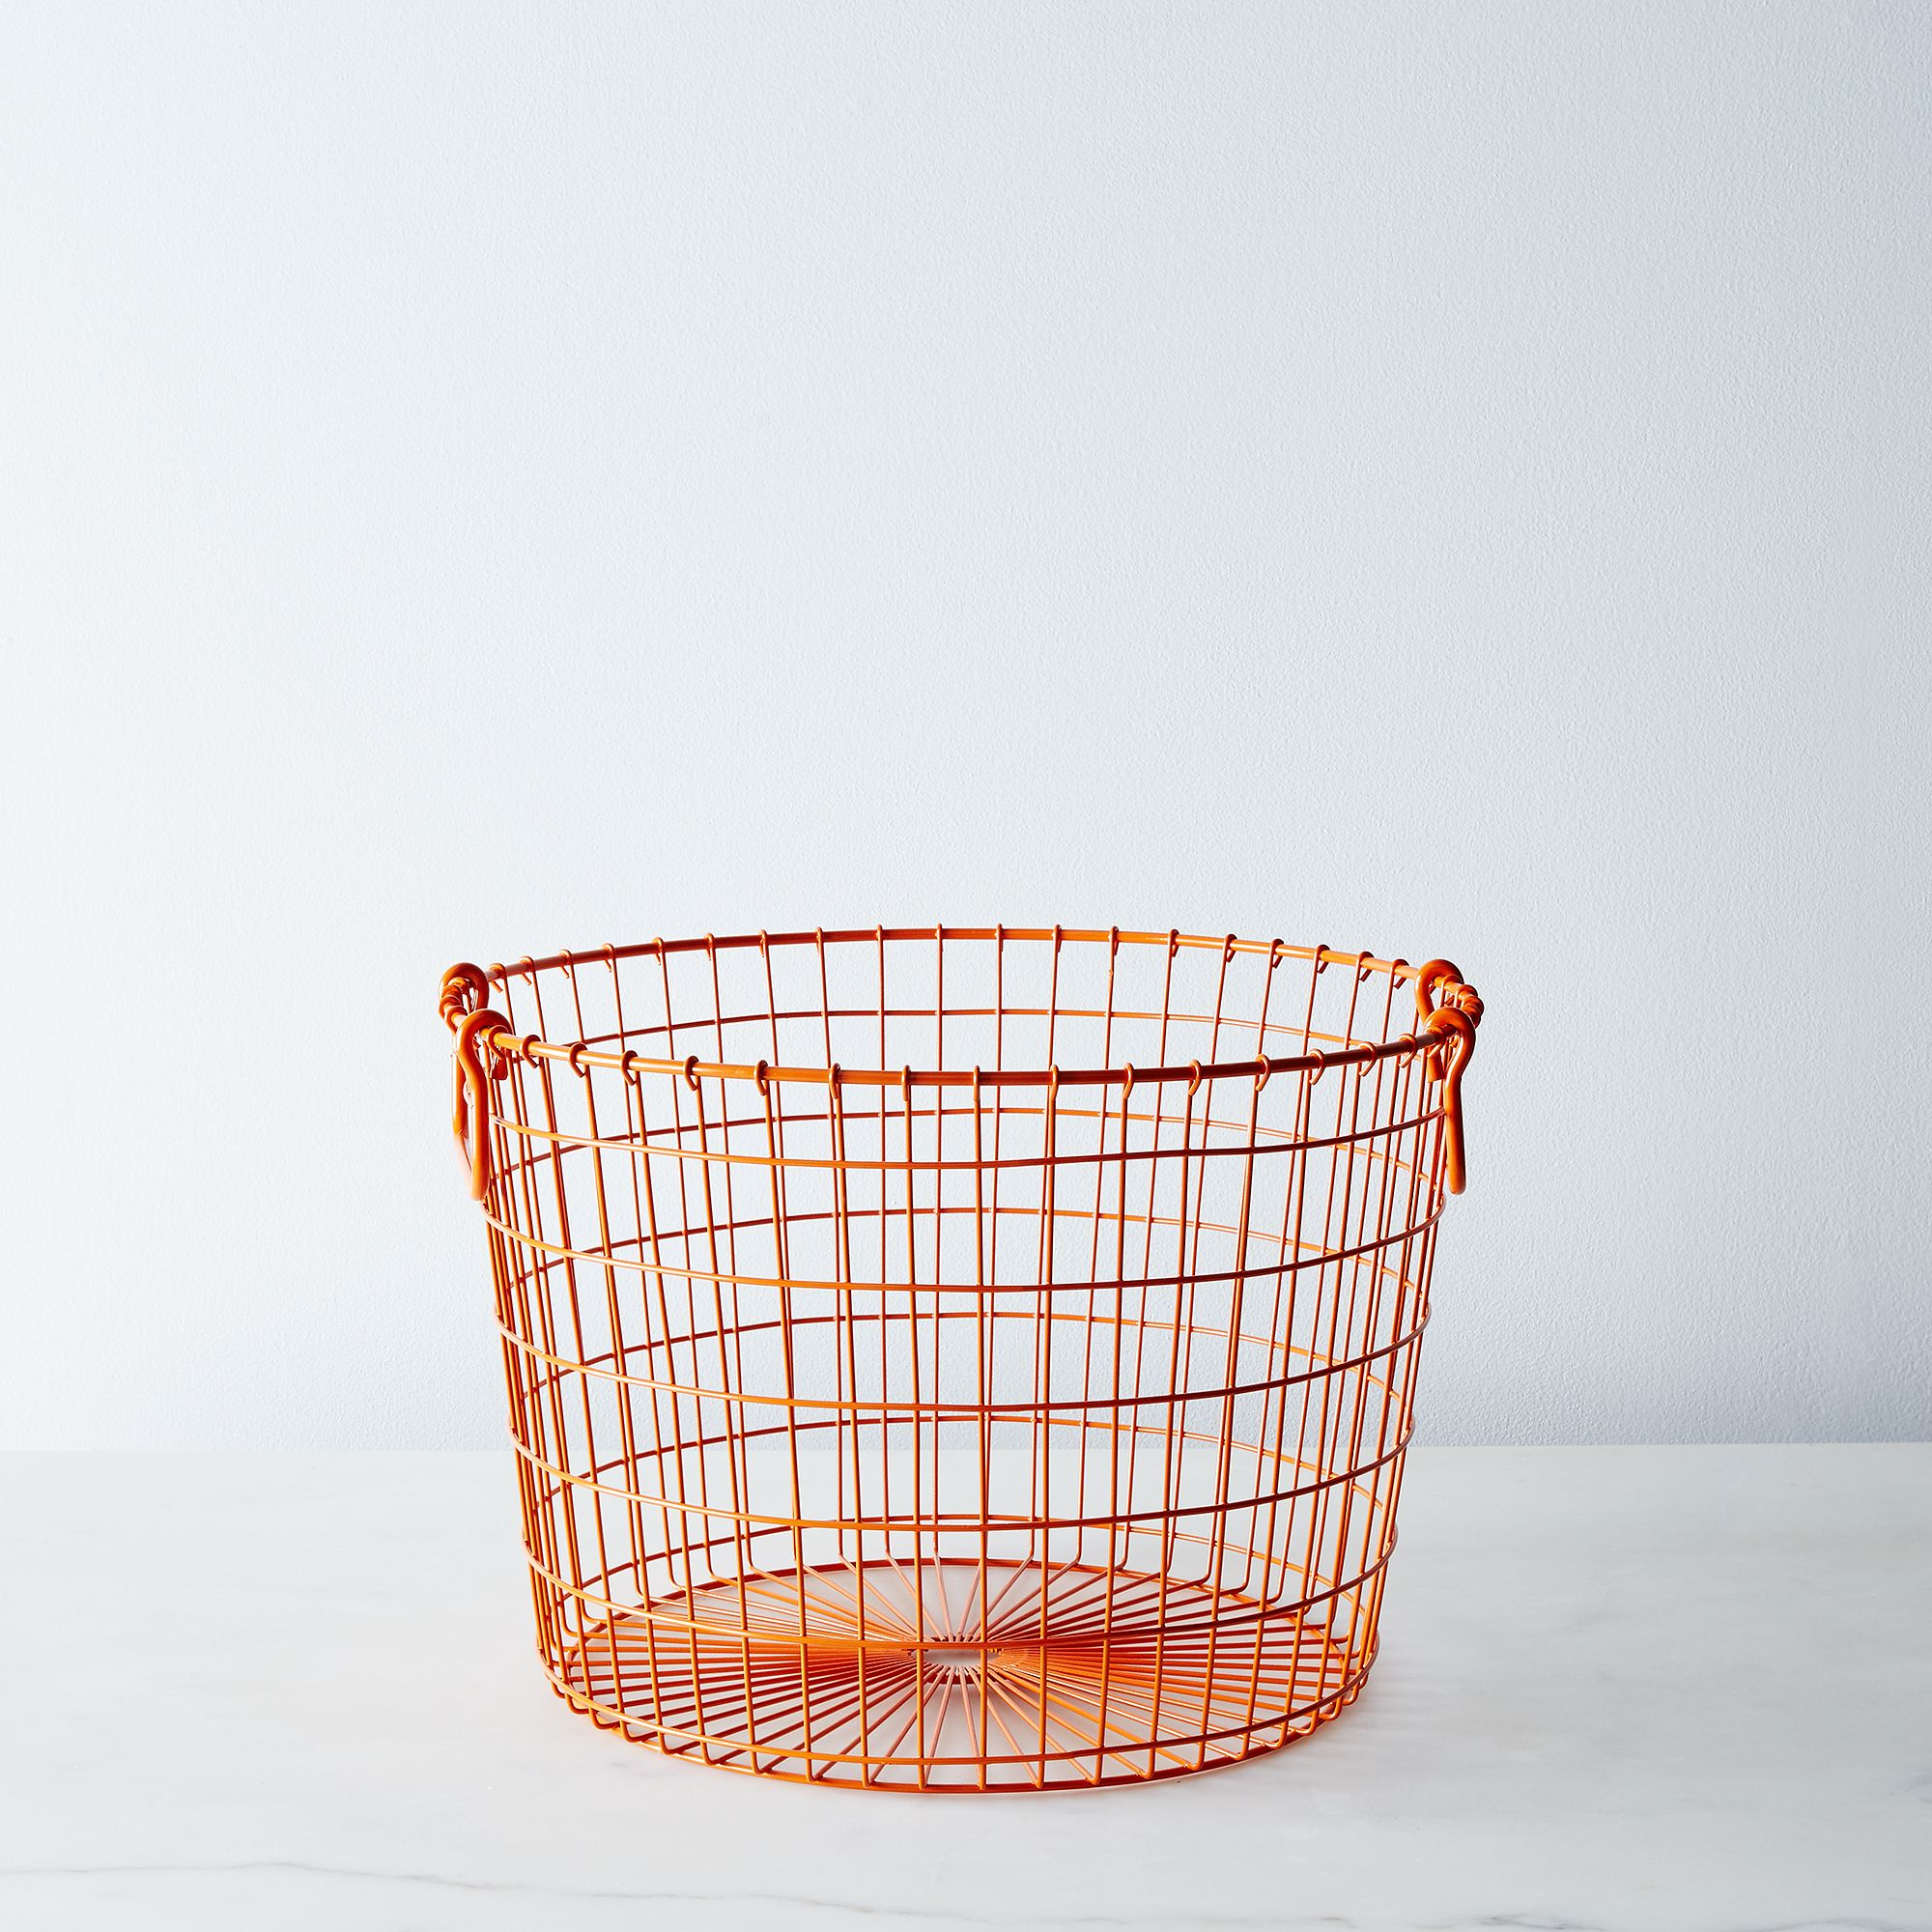 Ec014bfa a0f8 11e5 a190 0ef7535729df  2015 0710 lostine wire potato basket orange james ransom 002